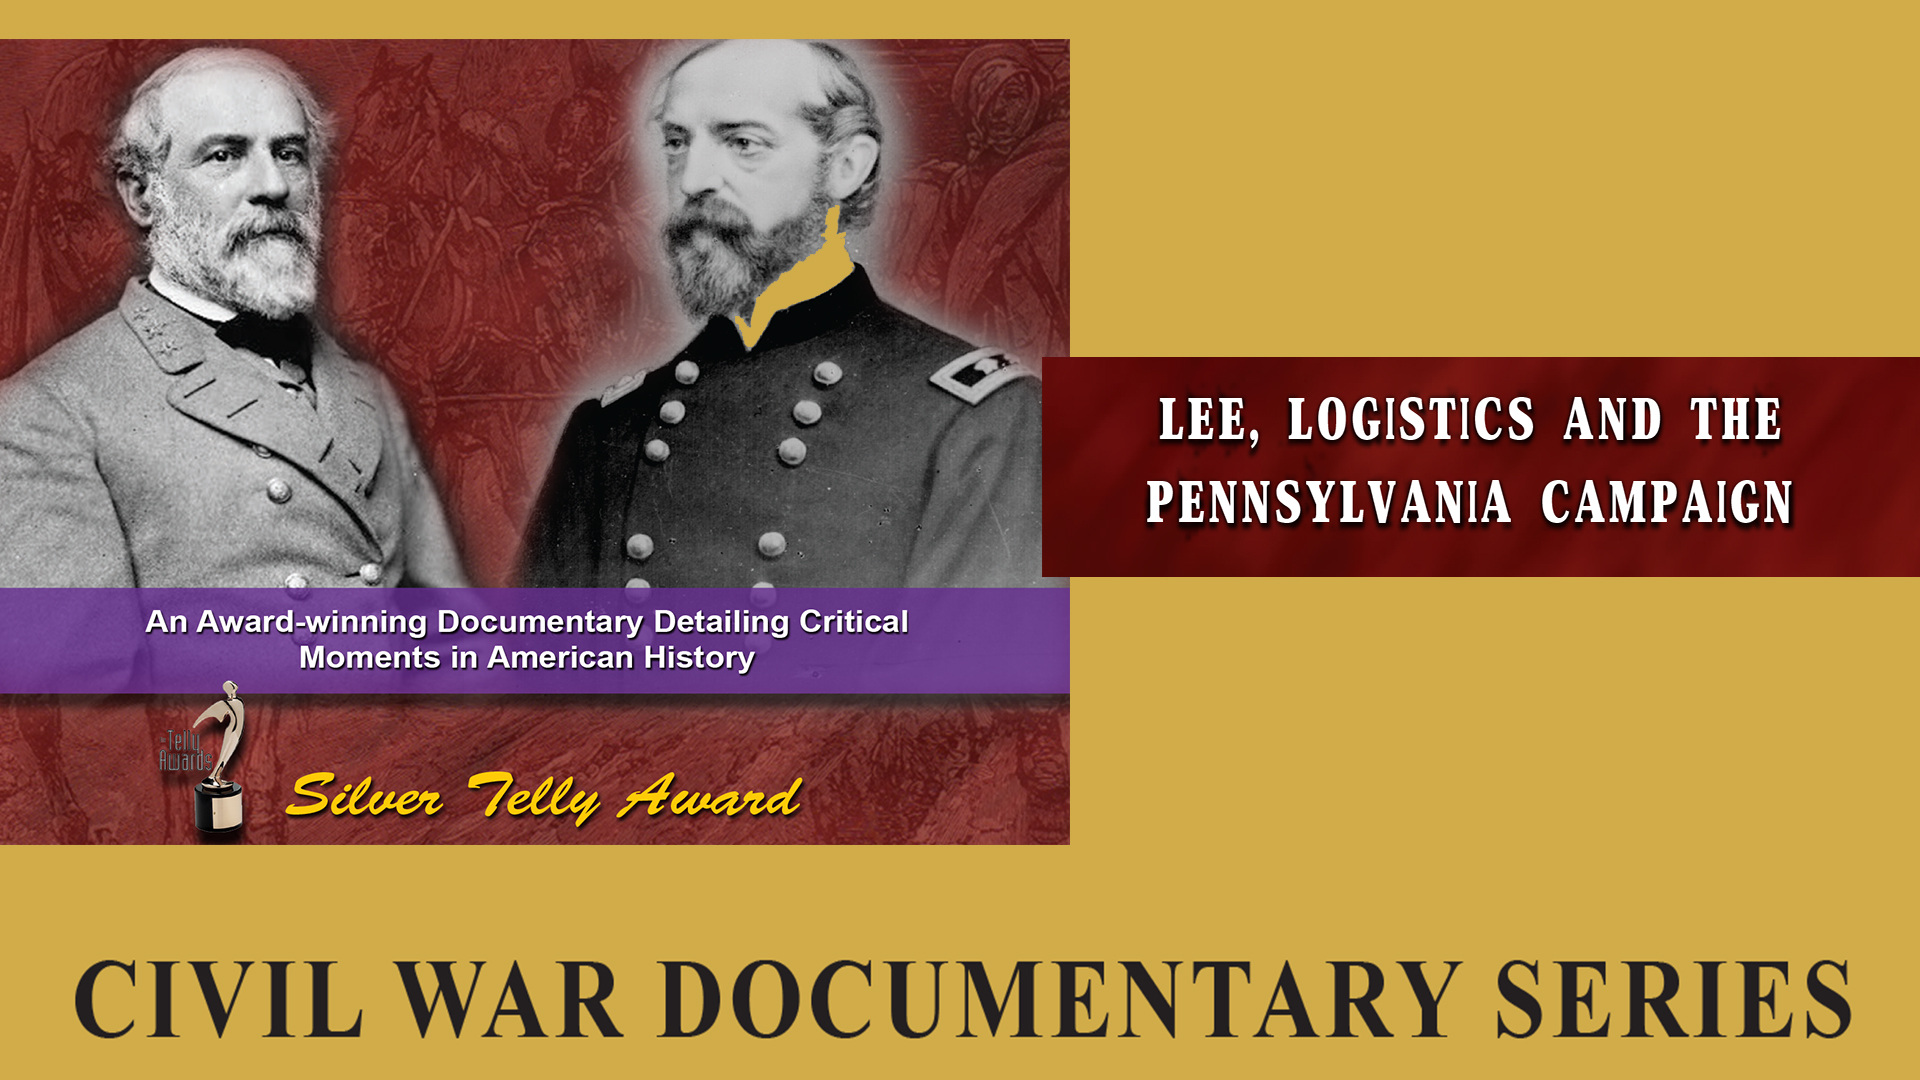 L4831 - Retreat From Gettysburg Lee, Logistics & The Pennsylvania Campaign